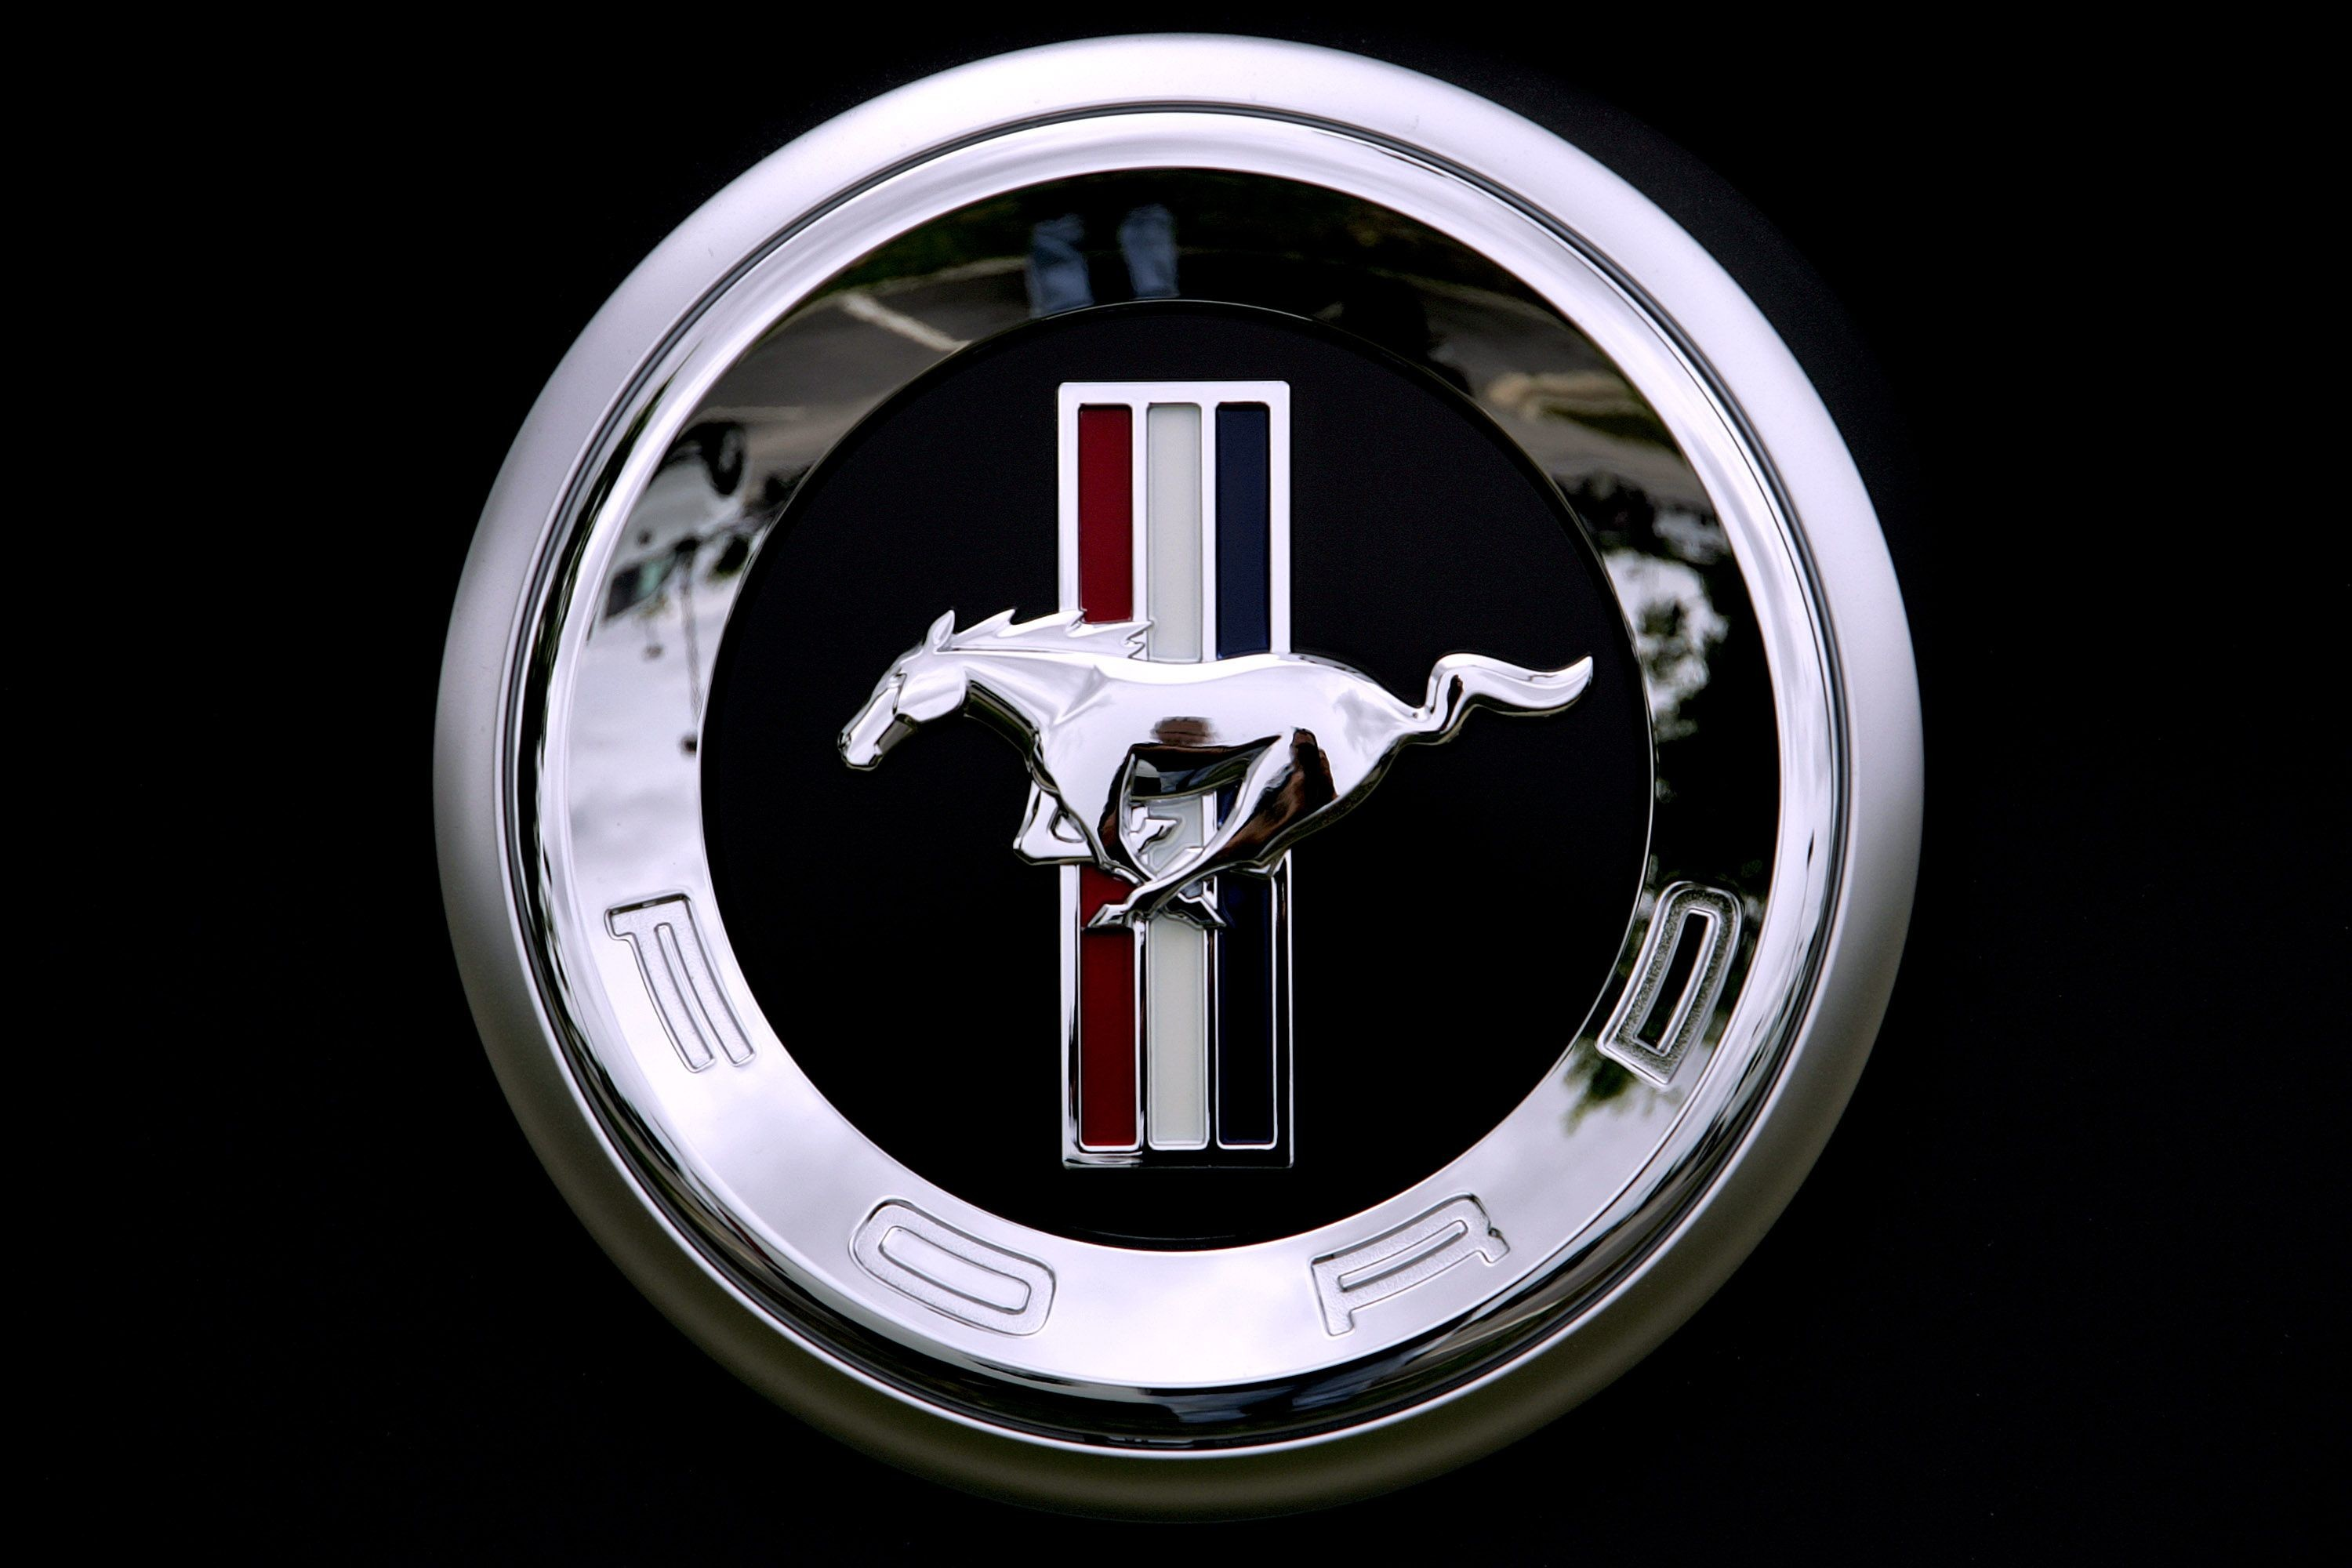 Ford Mustang Logo Wallpaper – Cars Wallpapers (813) ilikewalls.